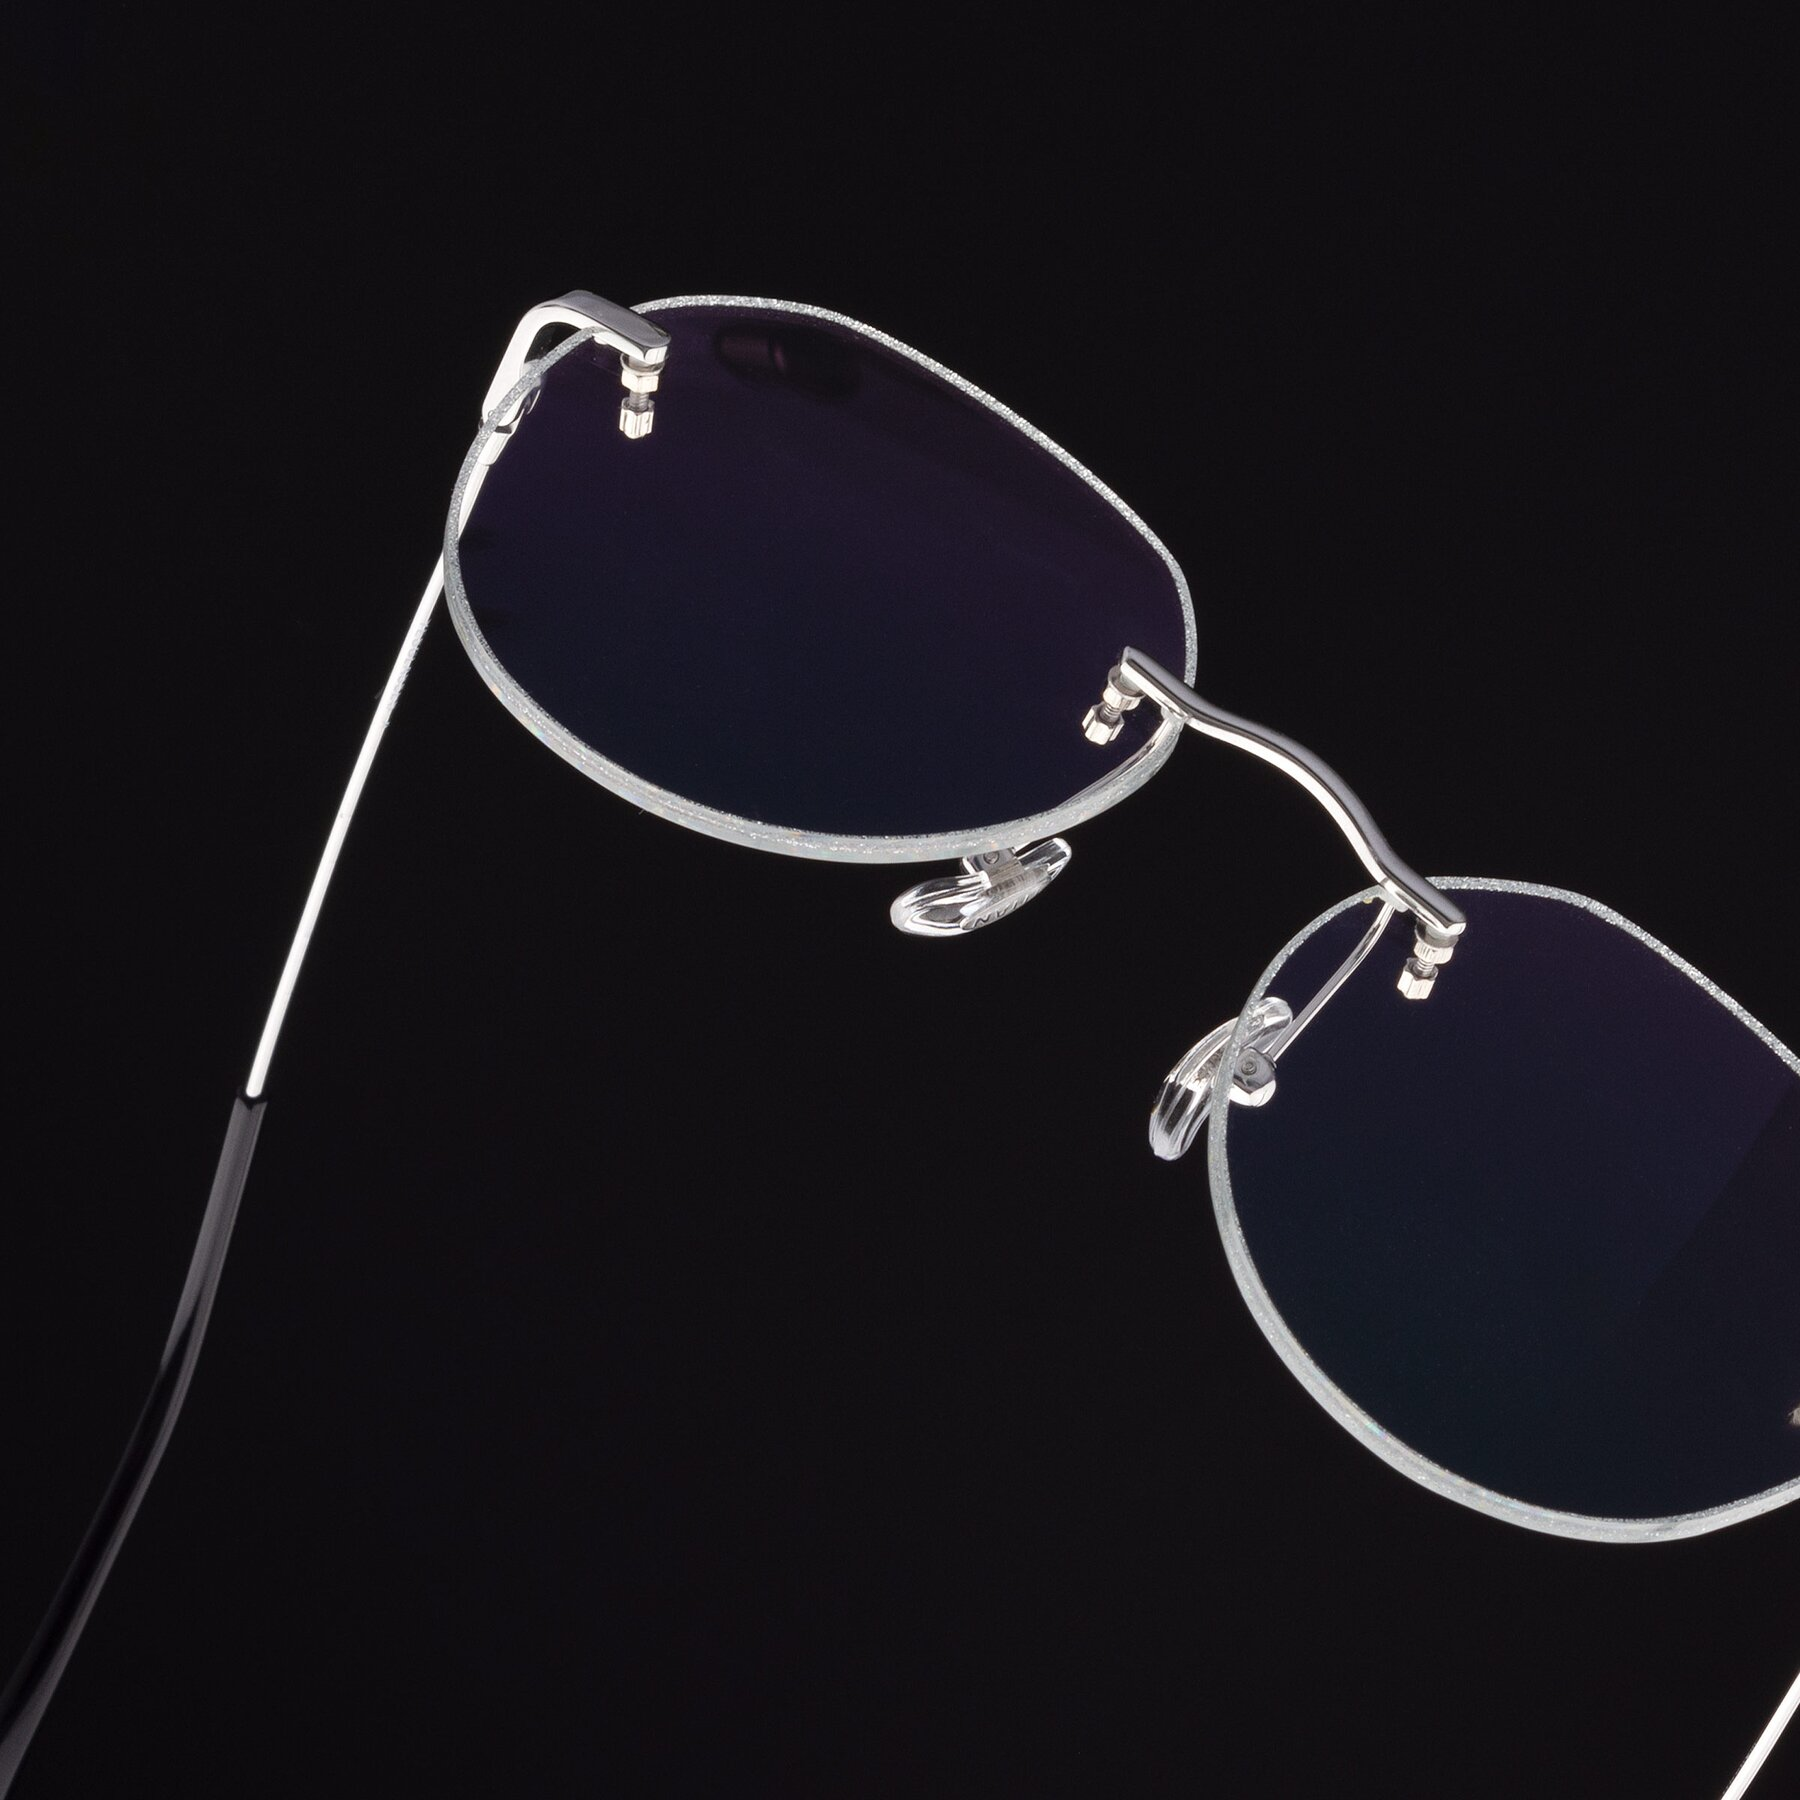 Women's lifestyle photography #2 of 1960S in Silver-Silver Glitter with Clear Eyeglass Lenses